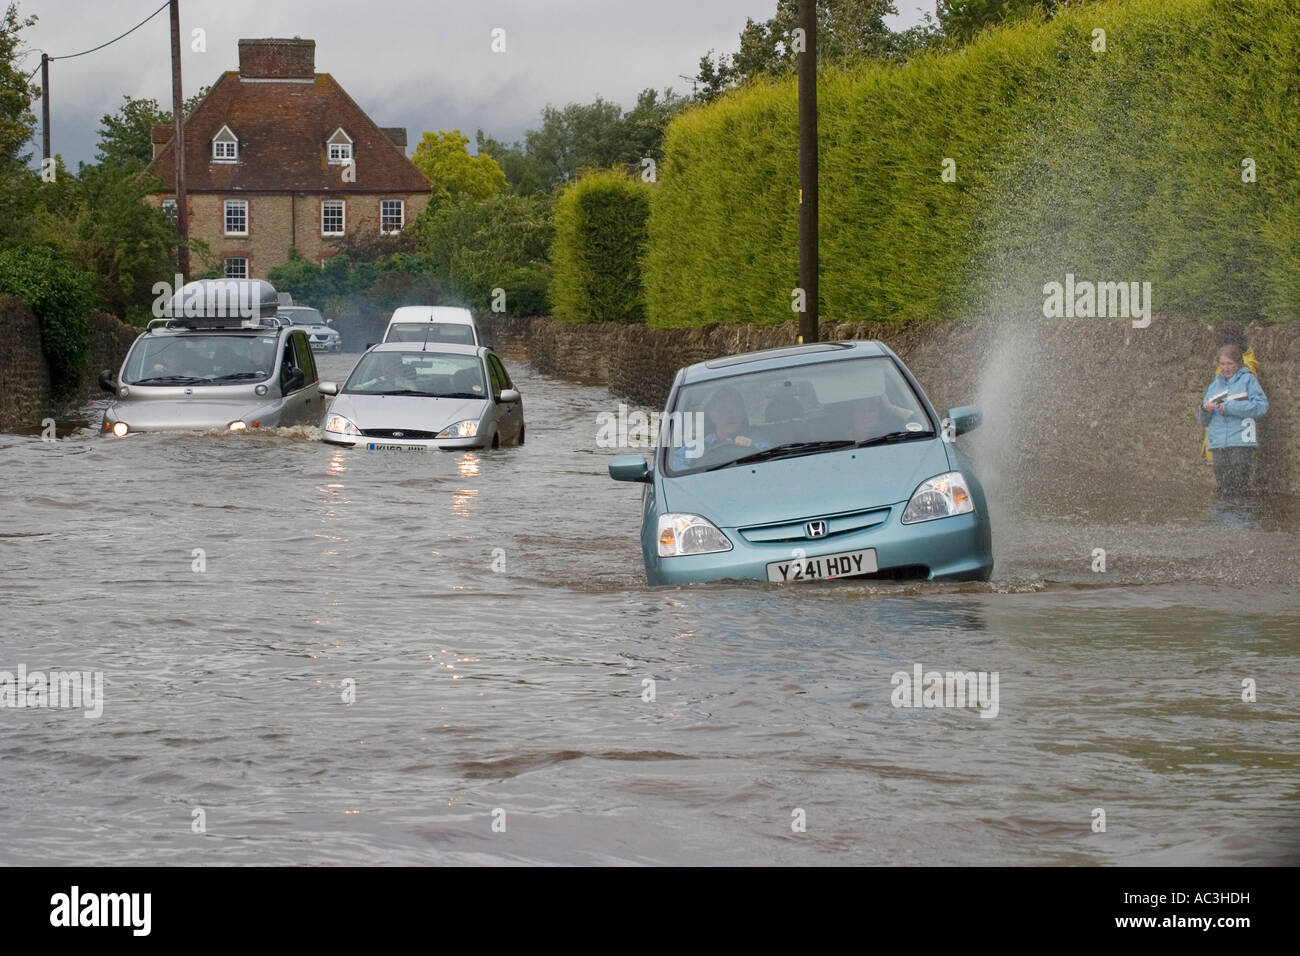 Cars in the floods - Stock Image